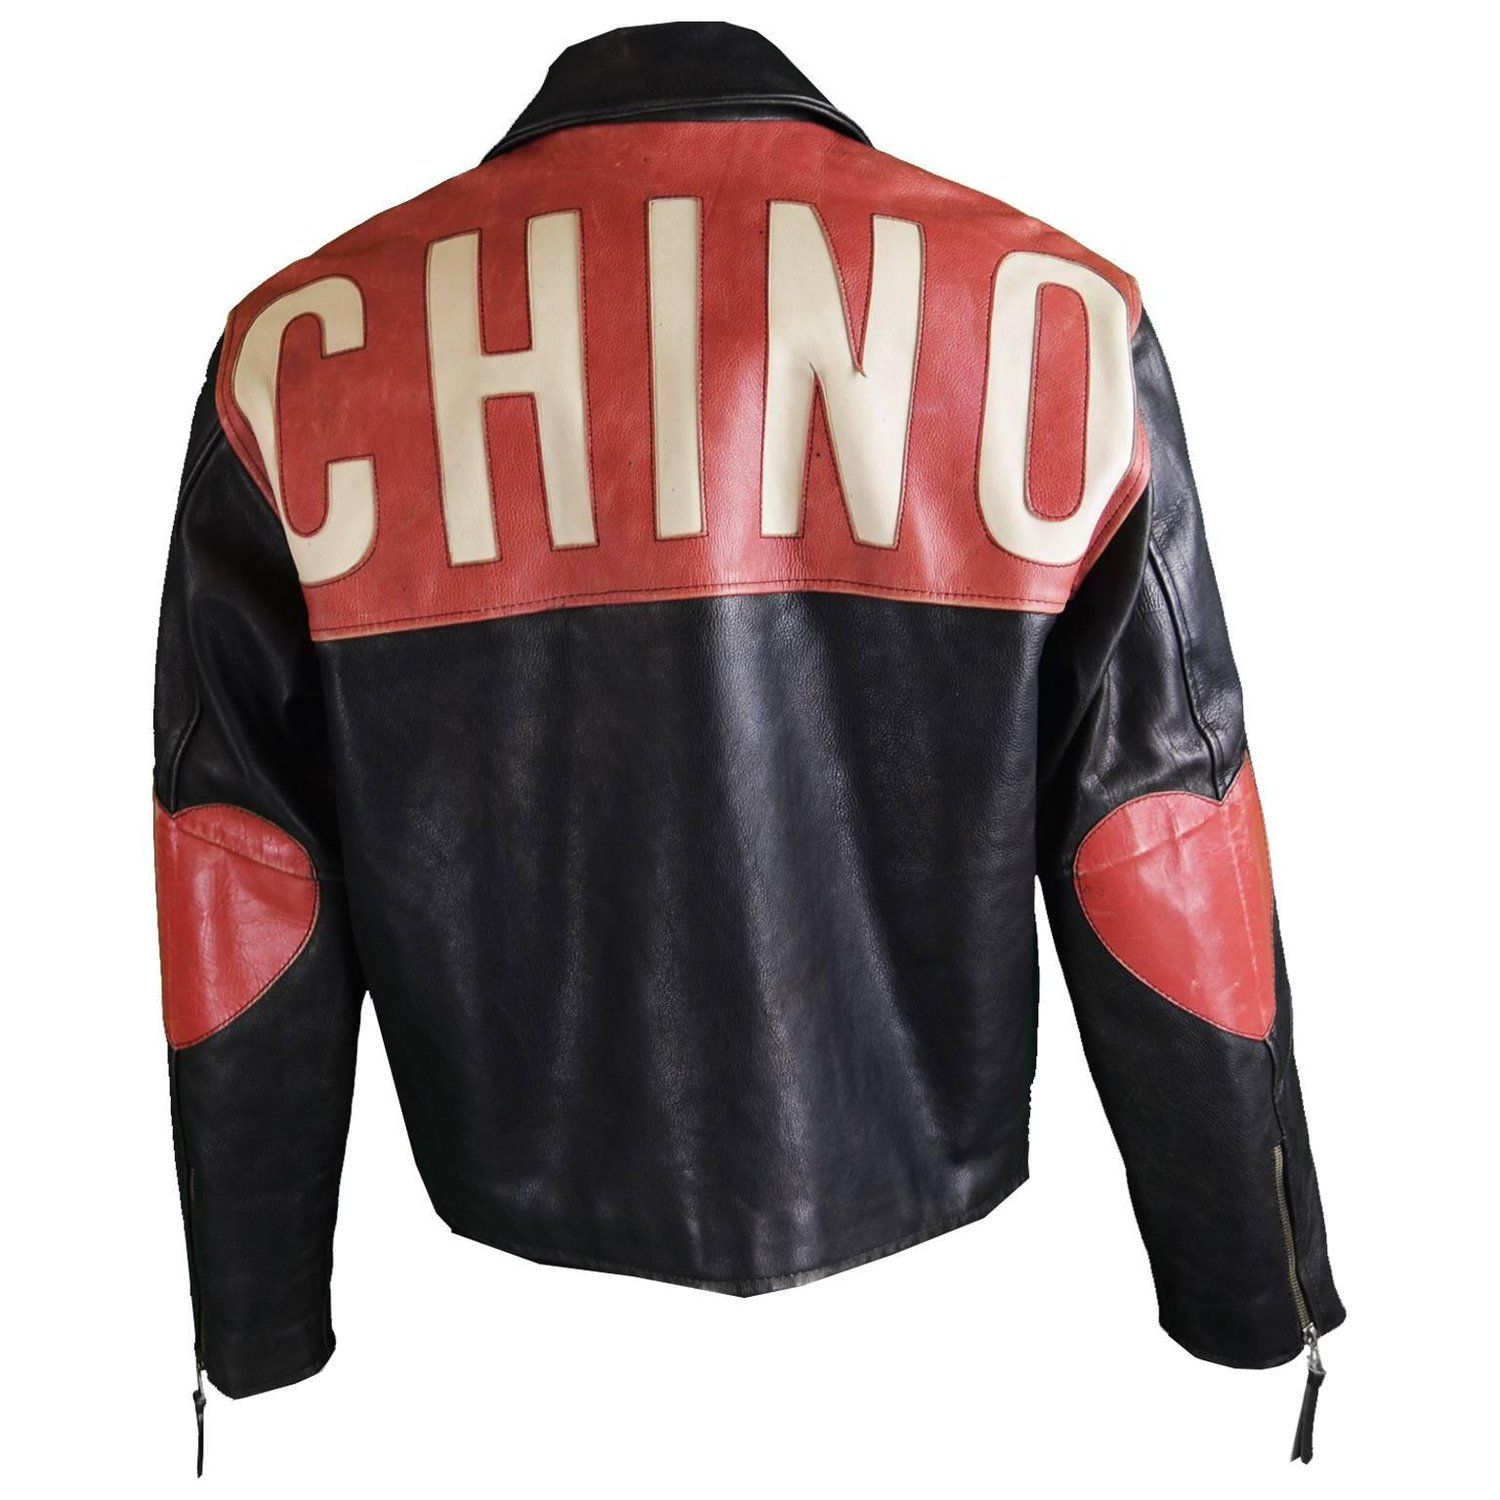 Moschino Men S Vintage Black And Red Love Heart Leather Jacket 1990s Cool Jackets For Men Jackets Men Fashion Leather Jacket Men Style [ 1500 x 1500 Pixel ]